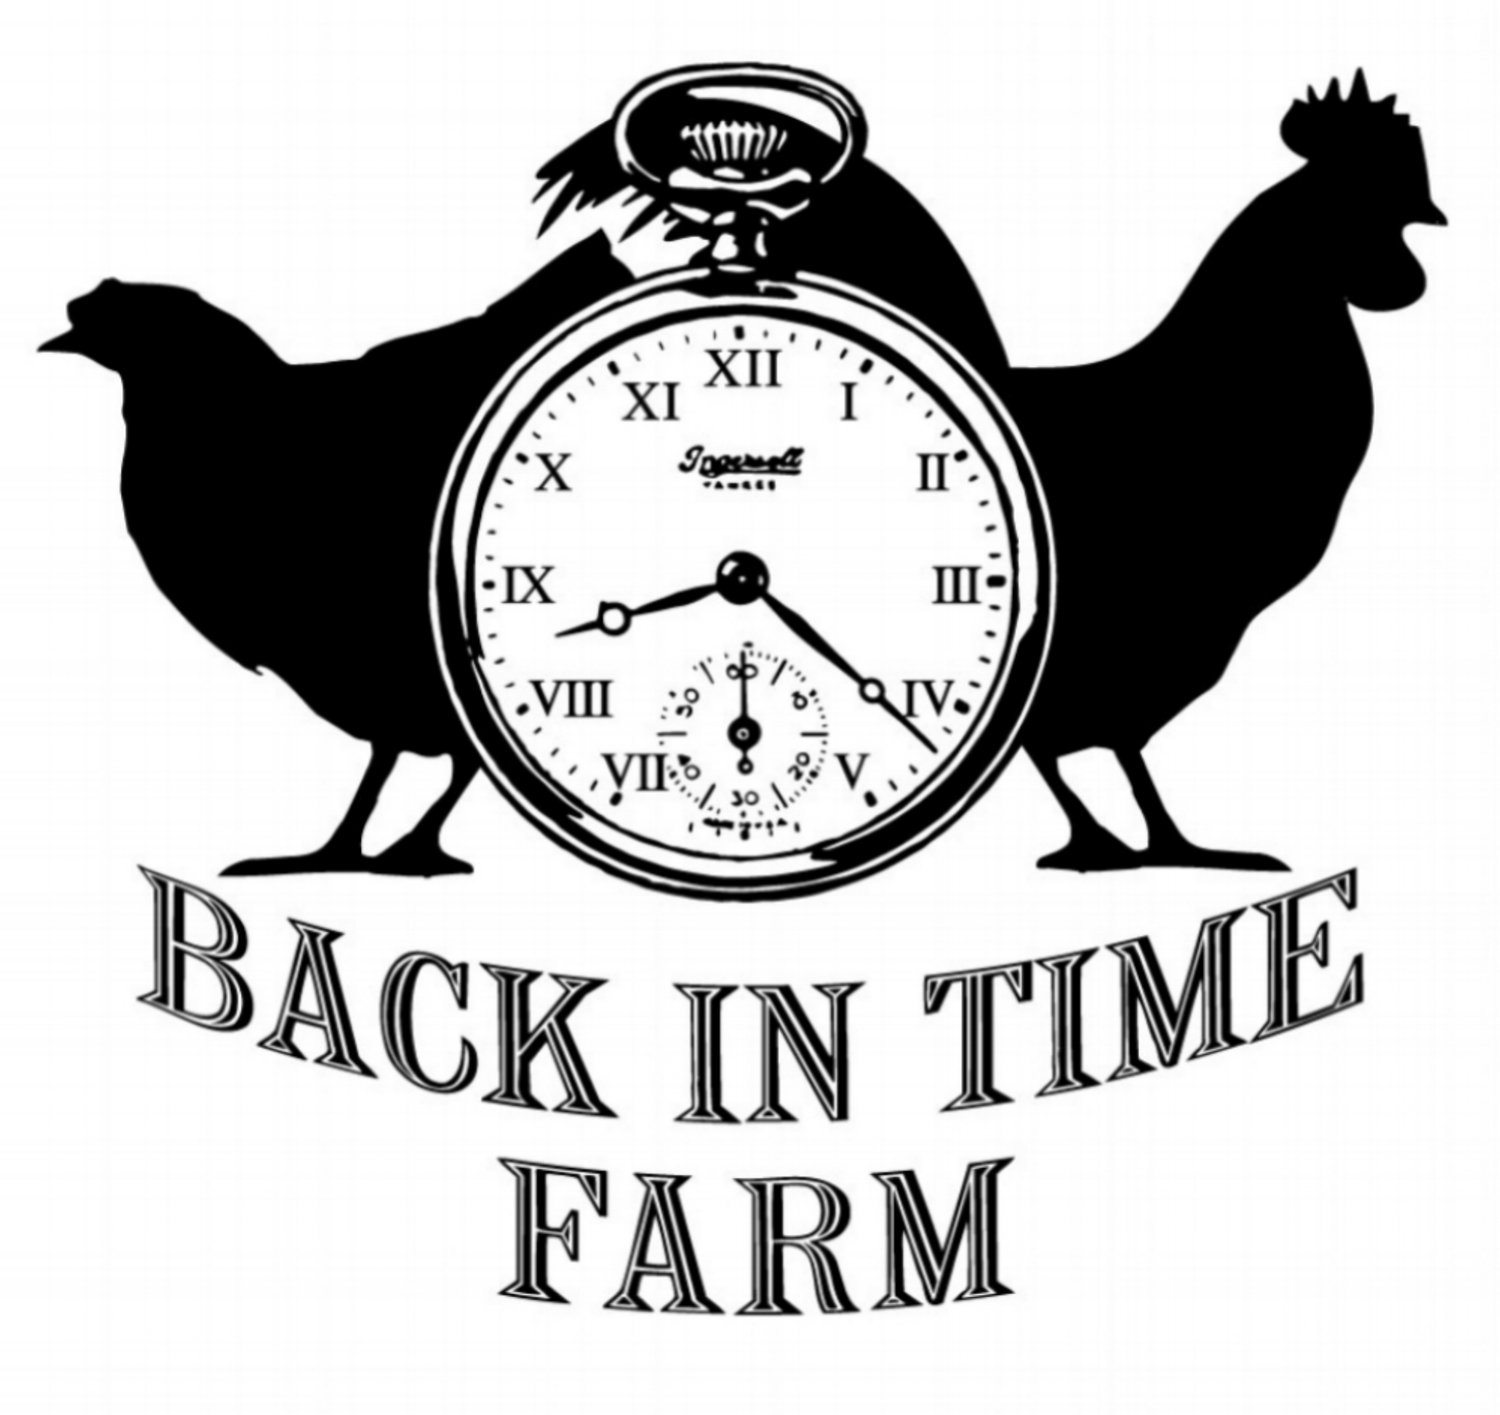 BACK IN TIME FARM